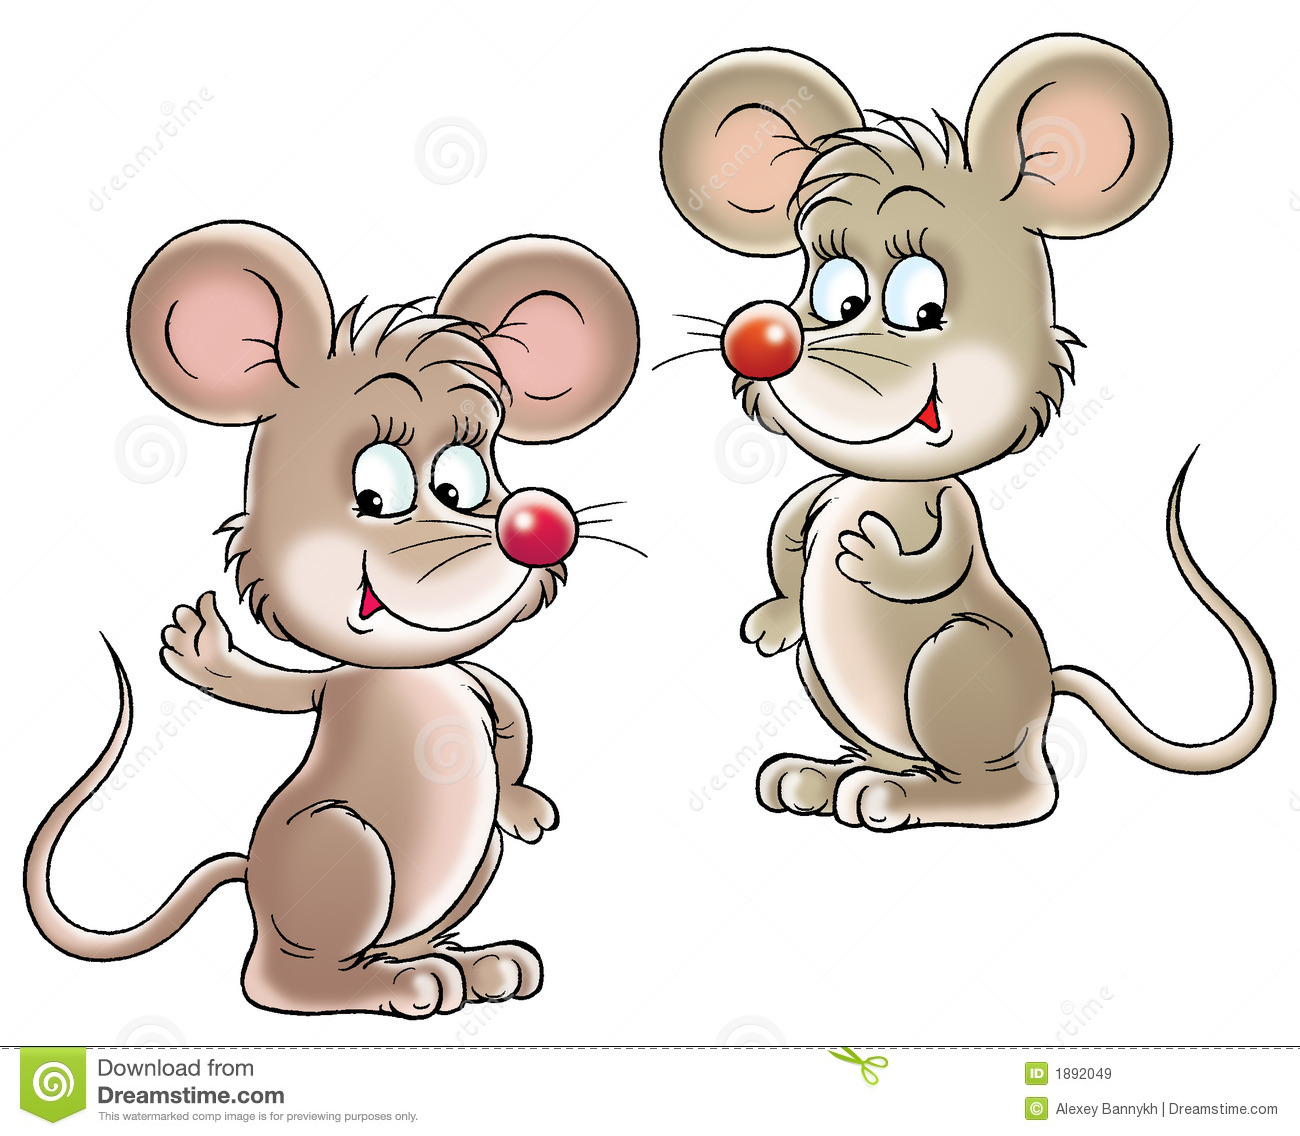 Mice Royalty Free Stock Images - Image: 1892049